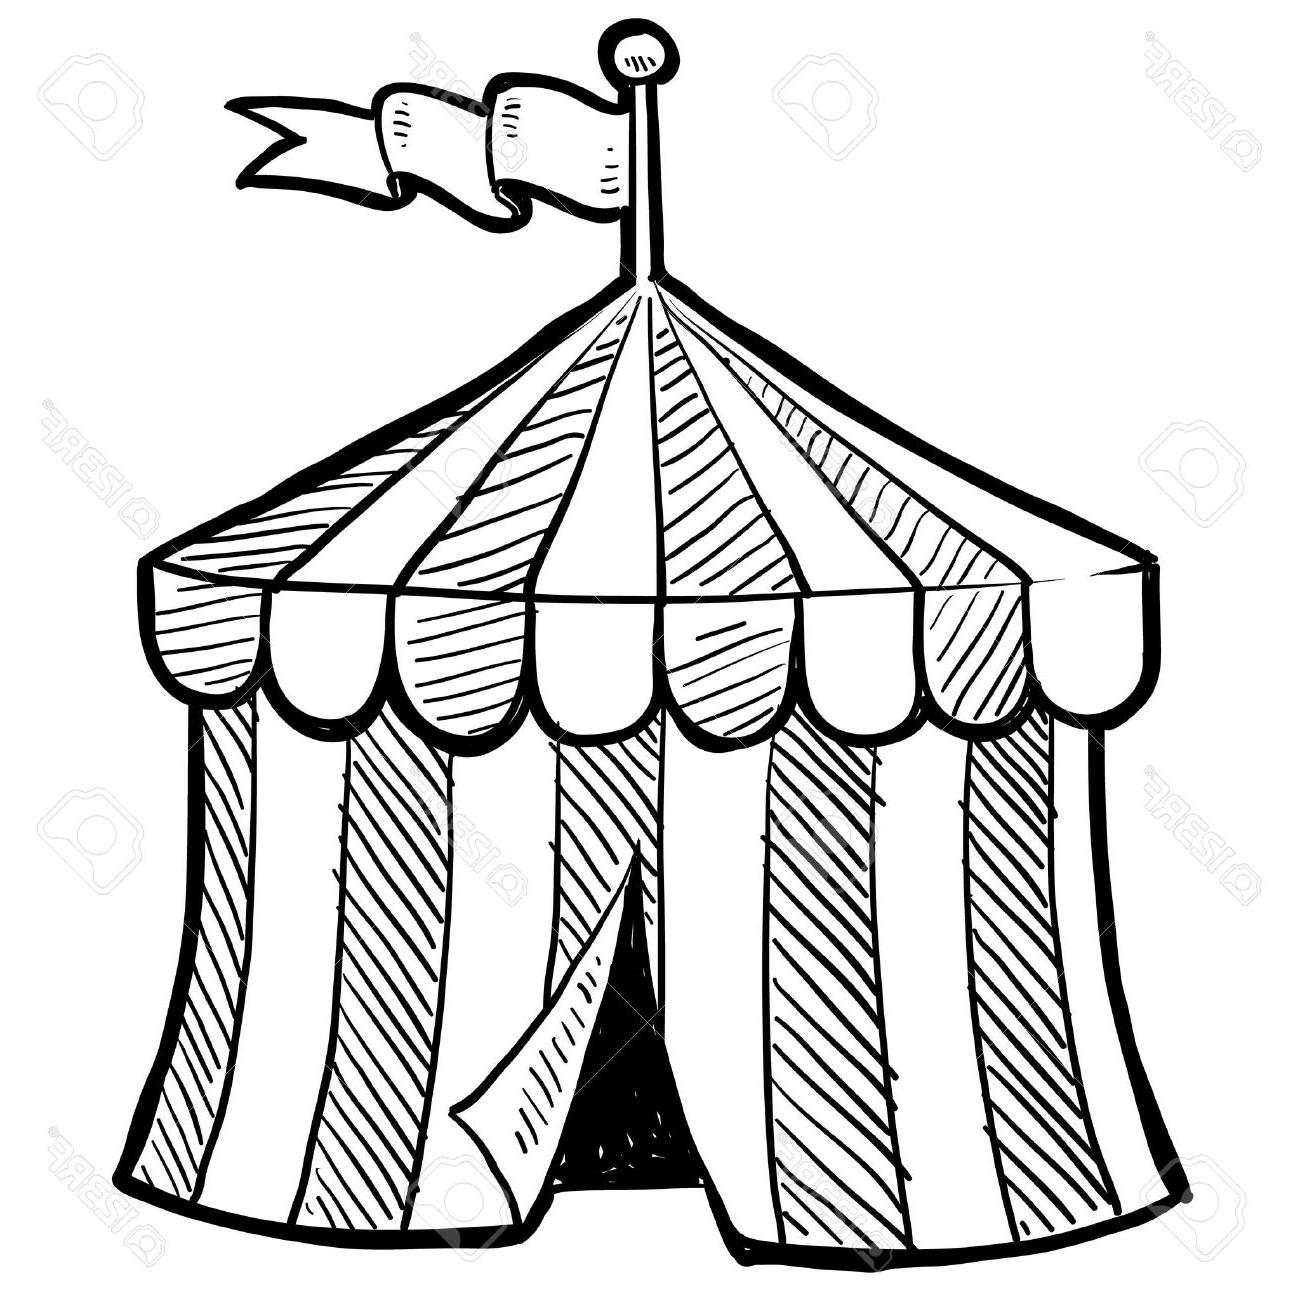 1300x1300 Best Hd Doodle Style Circus Tent In Vector Format Stock Design